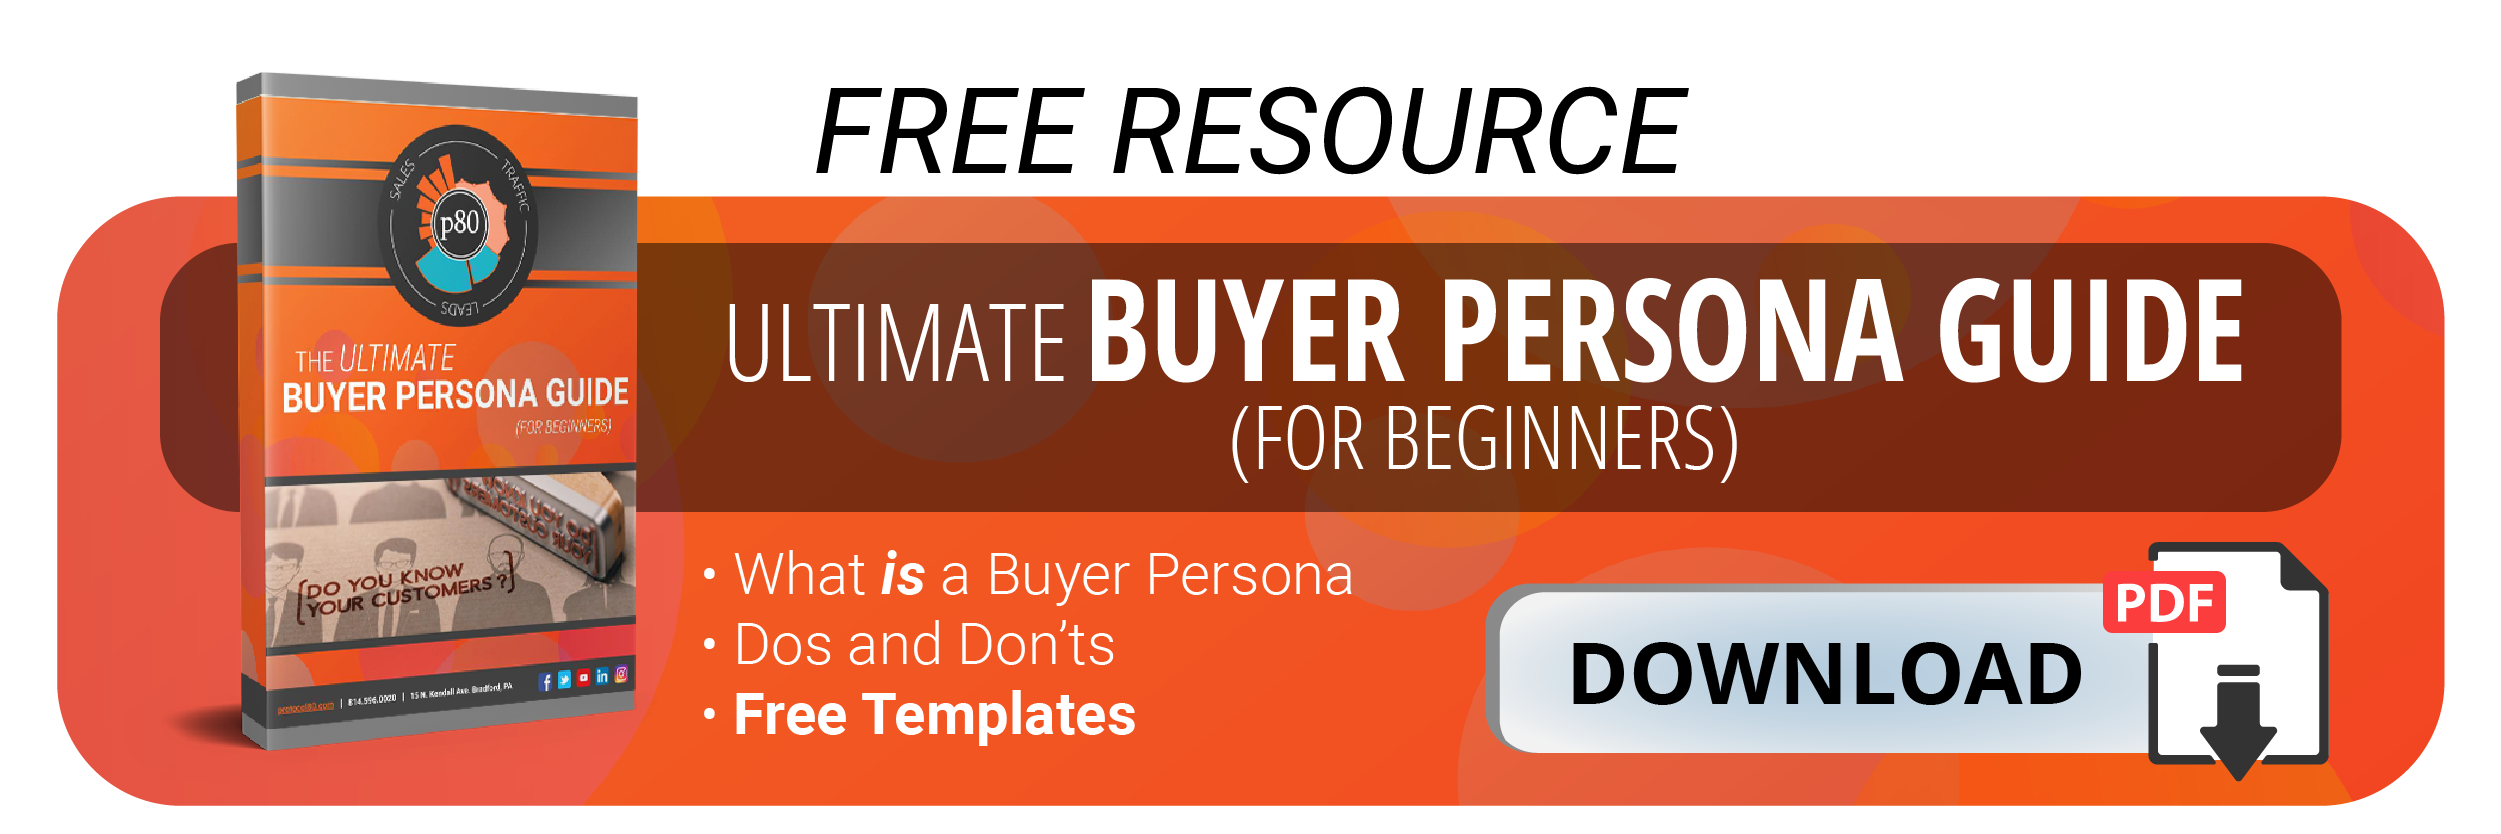 Download Now Ultimate Buyer Persona Guide